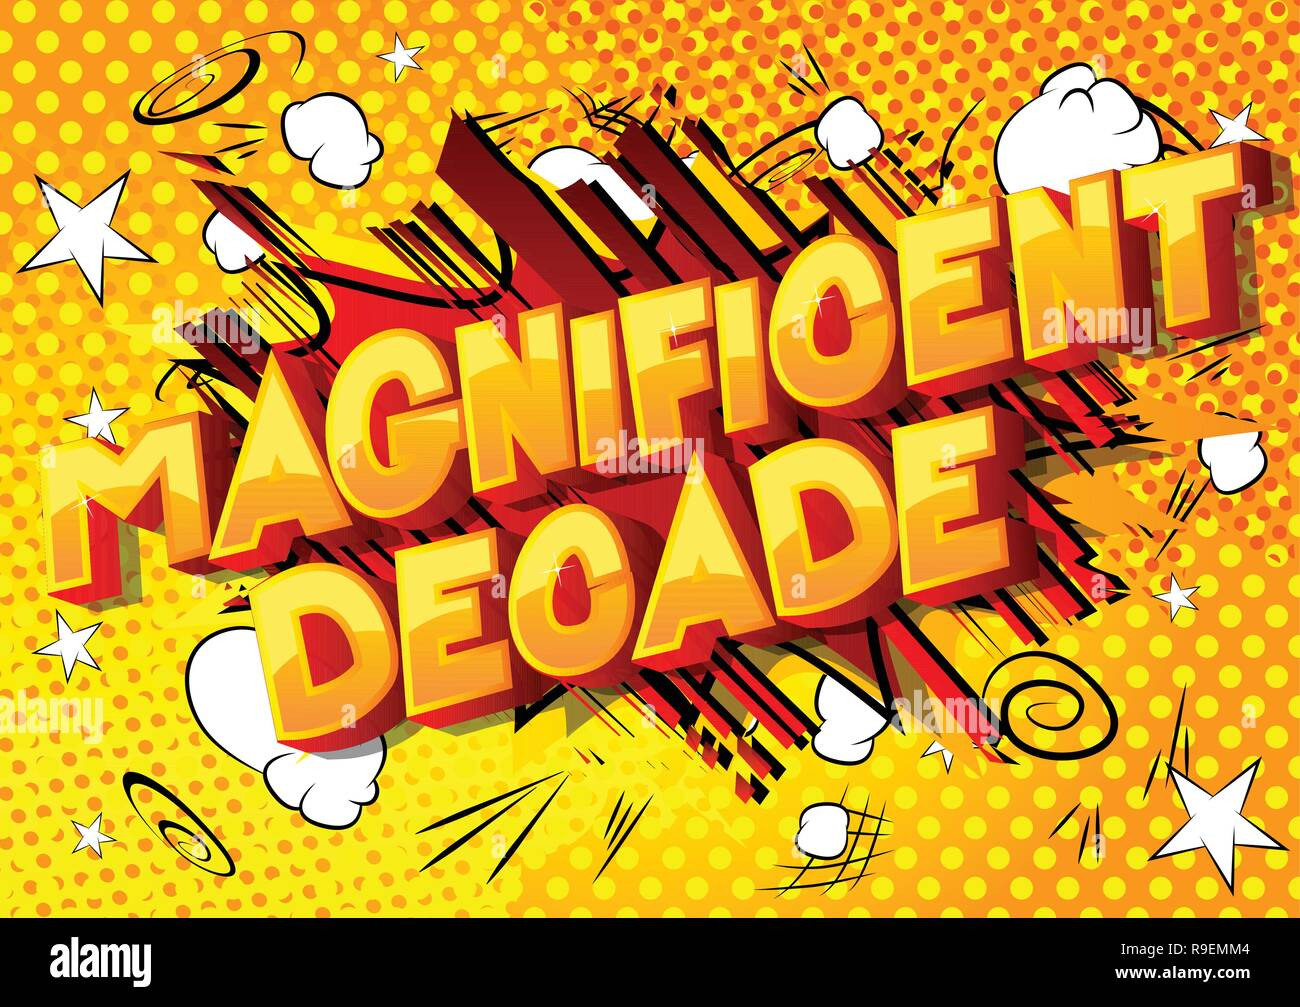 Magnificent Decade - Vector illustrated comic book style phrase on abstract background. - Stock Vector